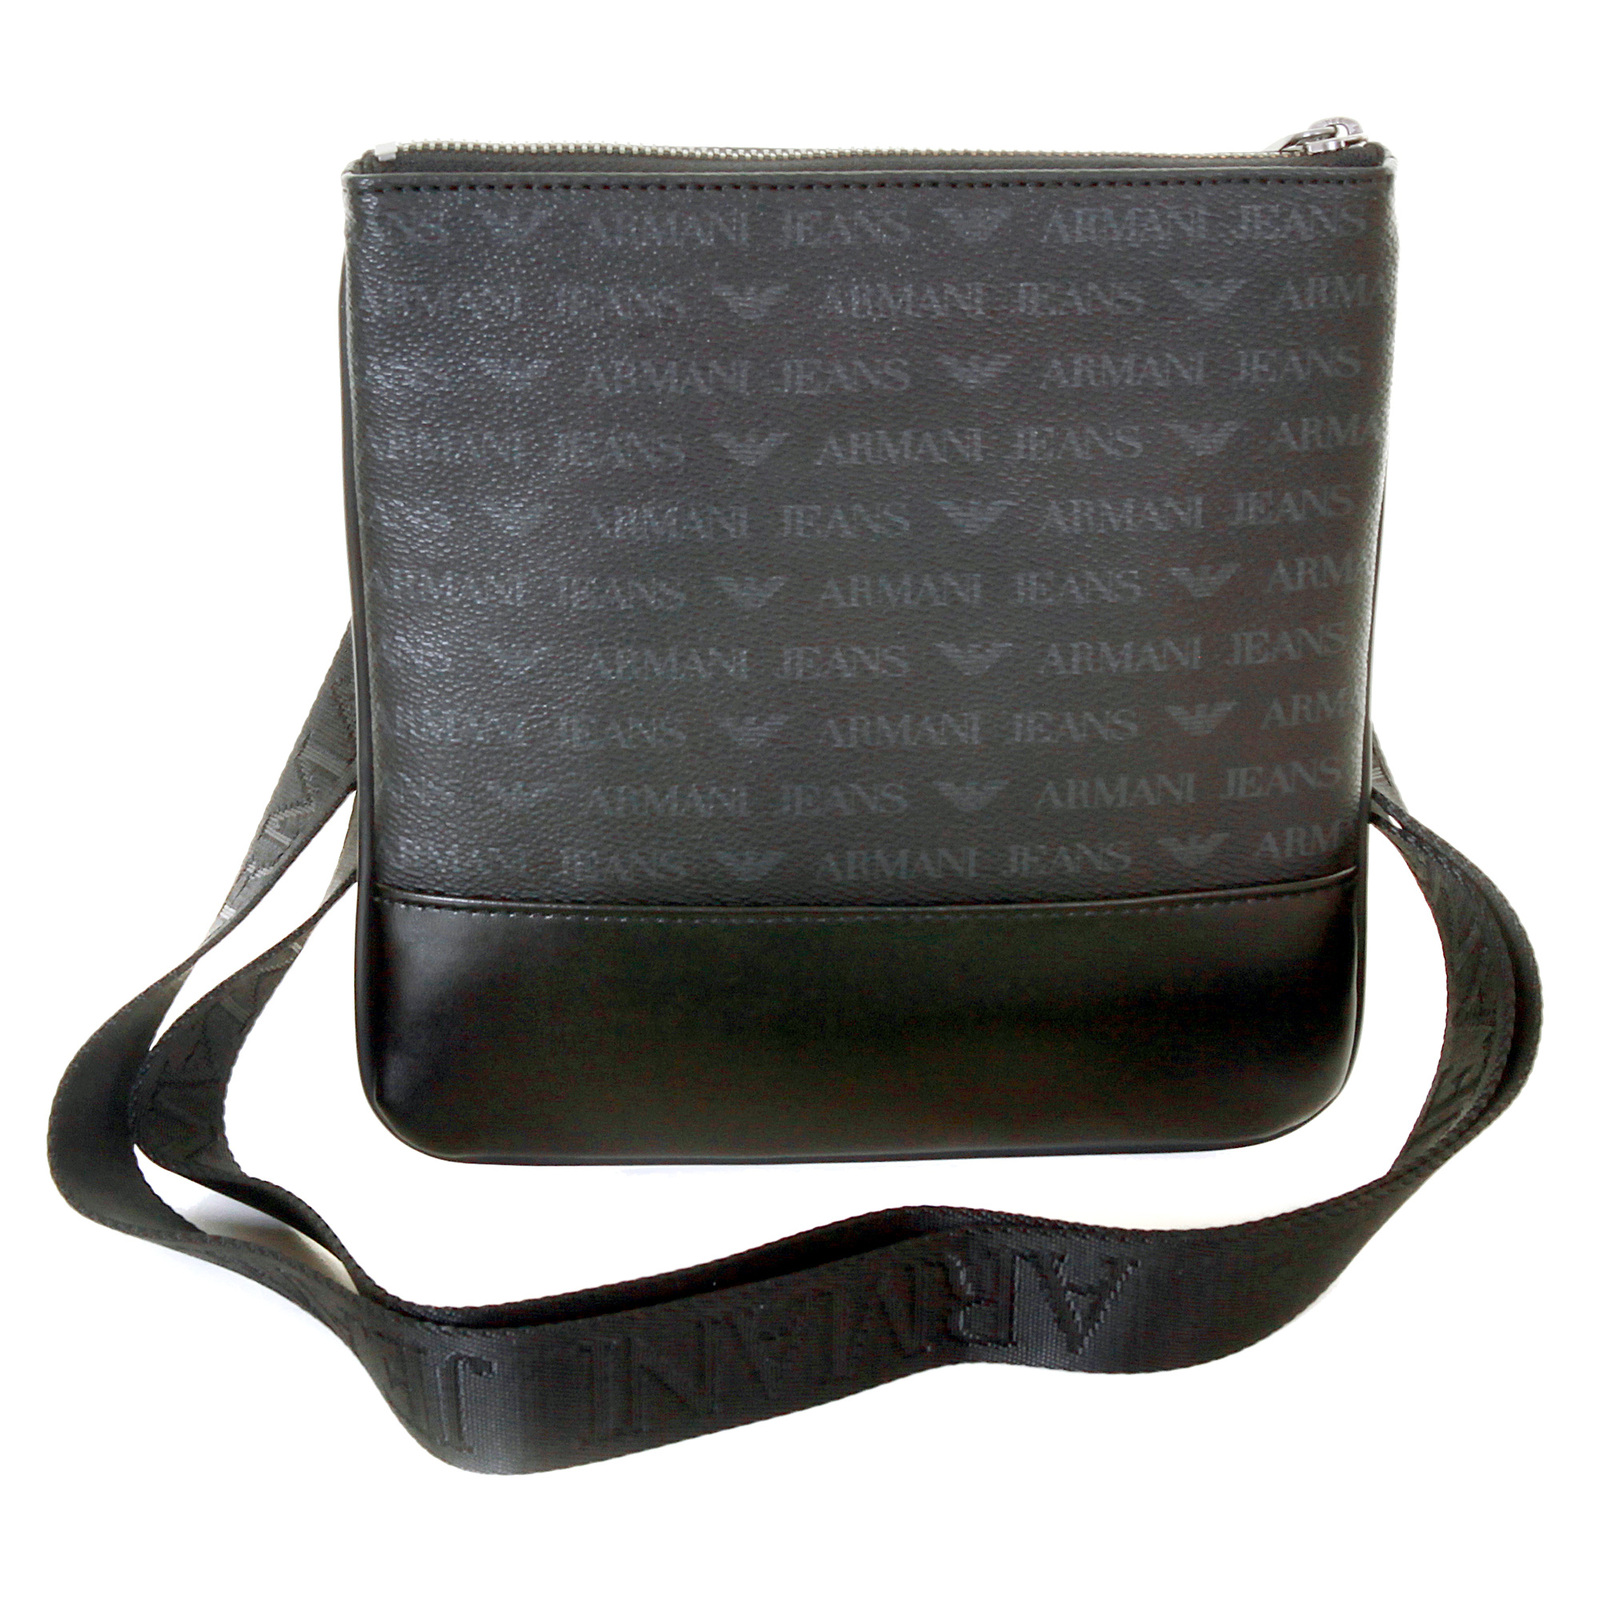 c34a1353e5 Armani Jeans mens black logo small messenger bag AJM2473